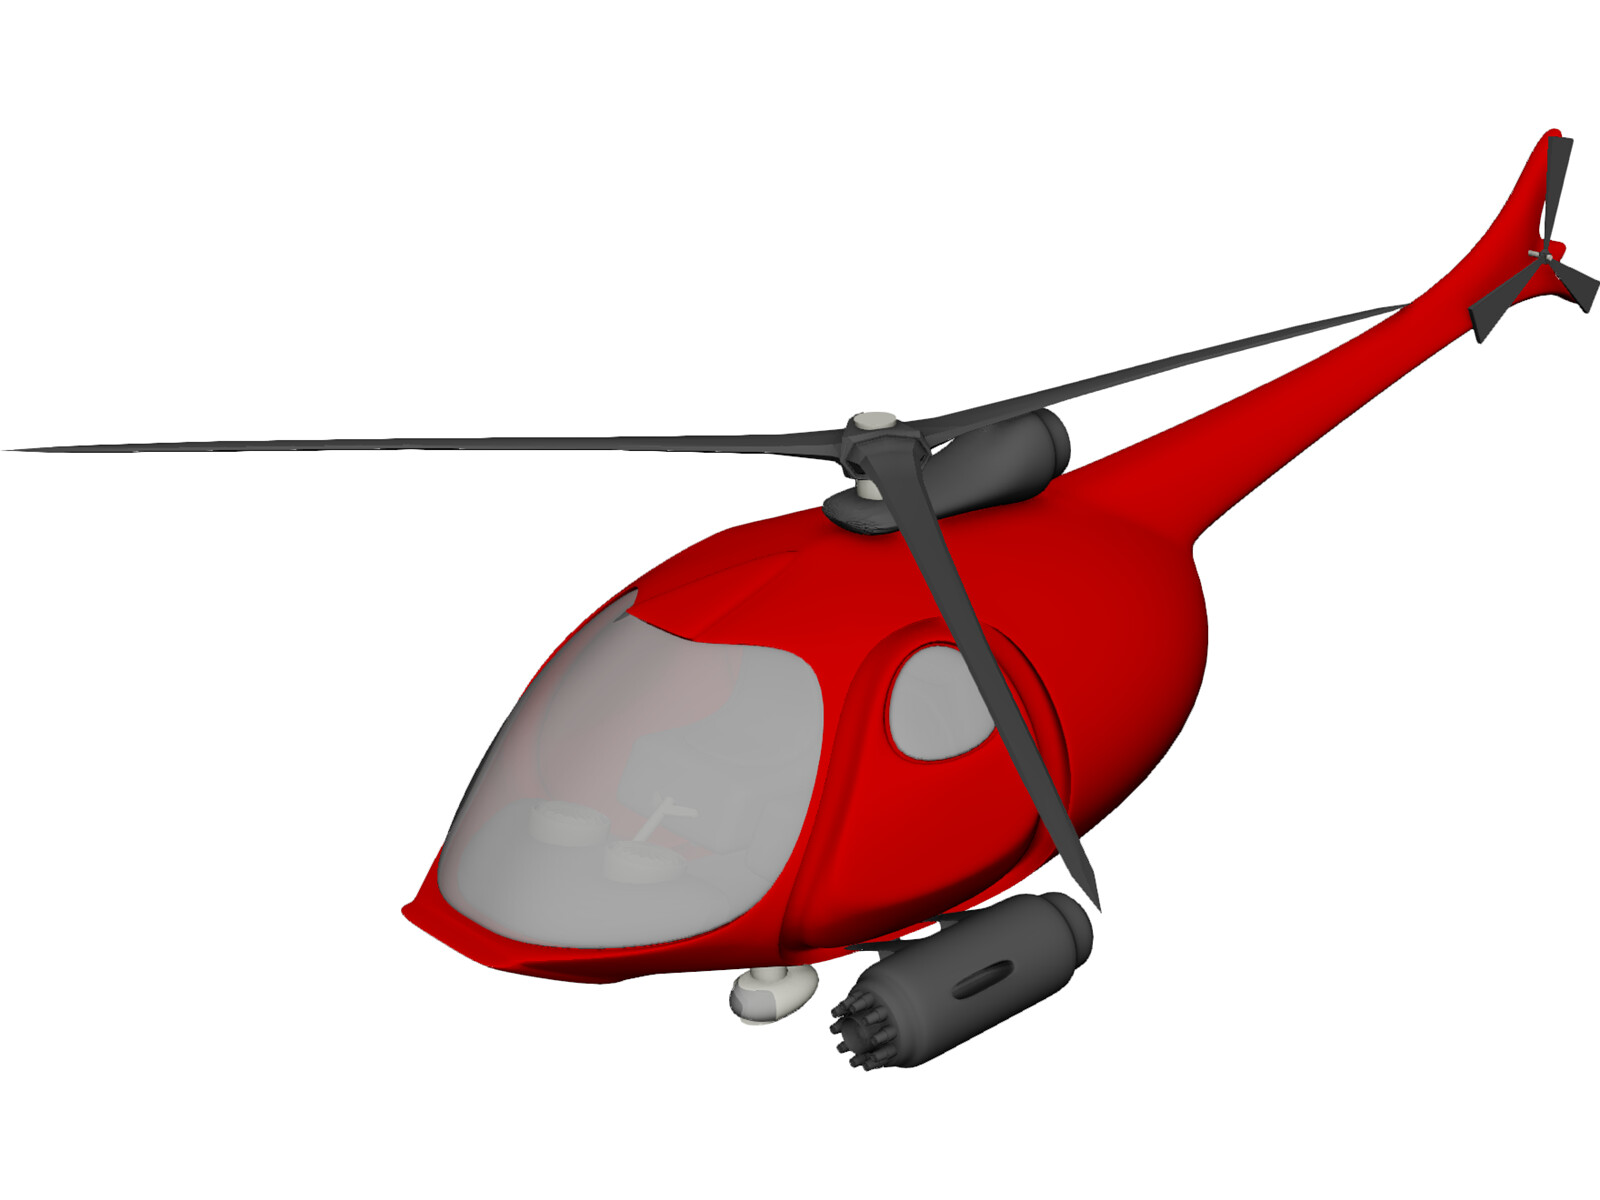 Helicopter New Concept Design 3D Model